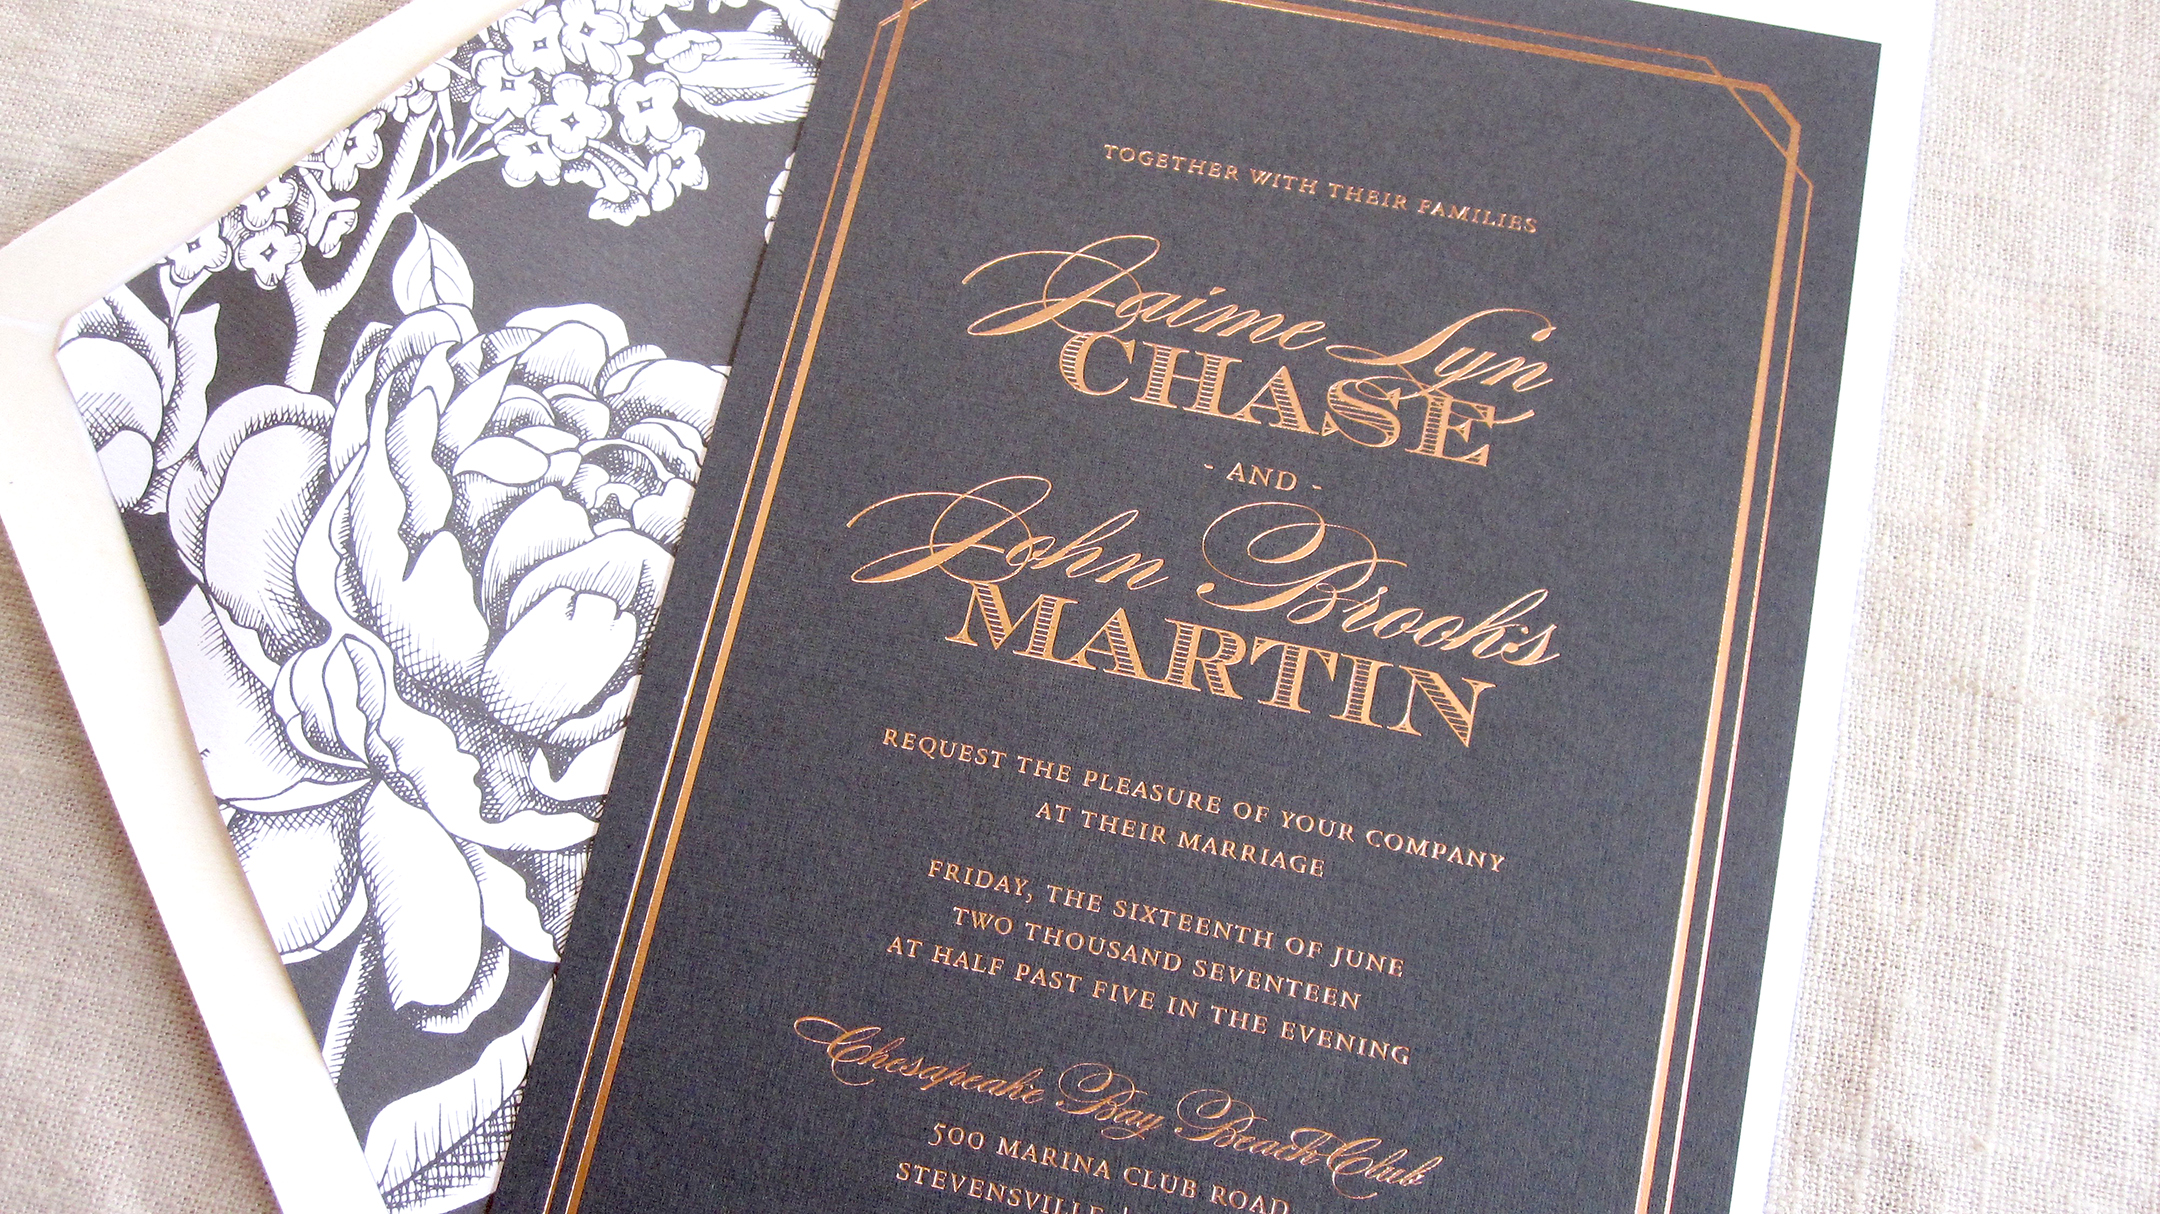 Floral_invitations_baltimore2.jpg